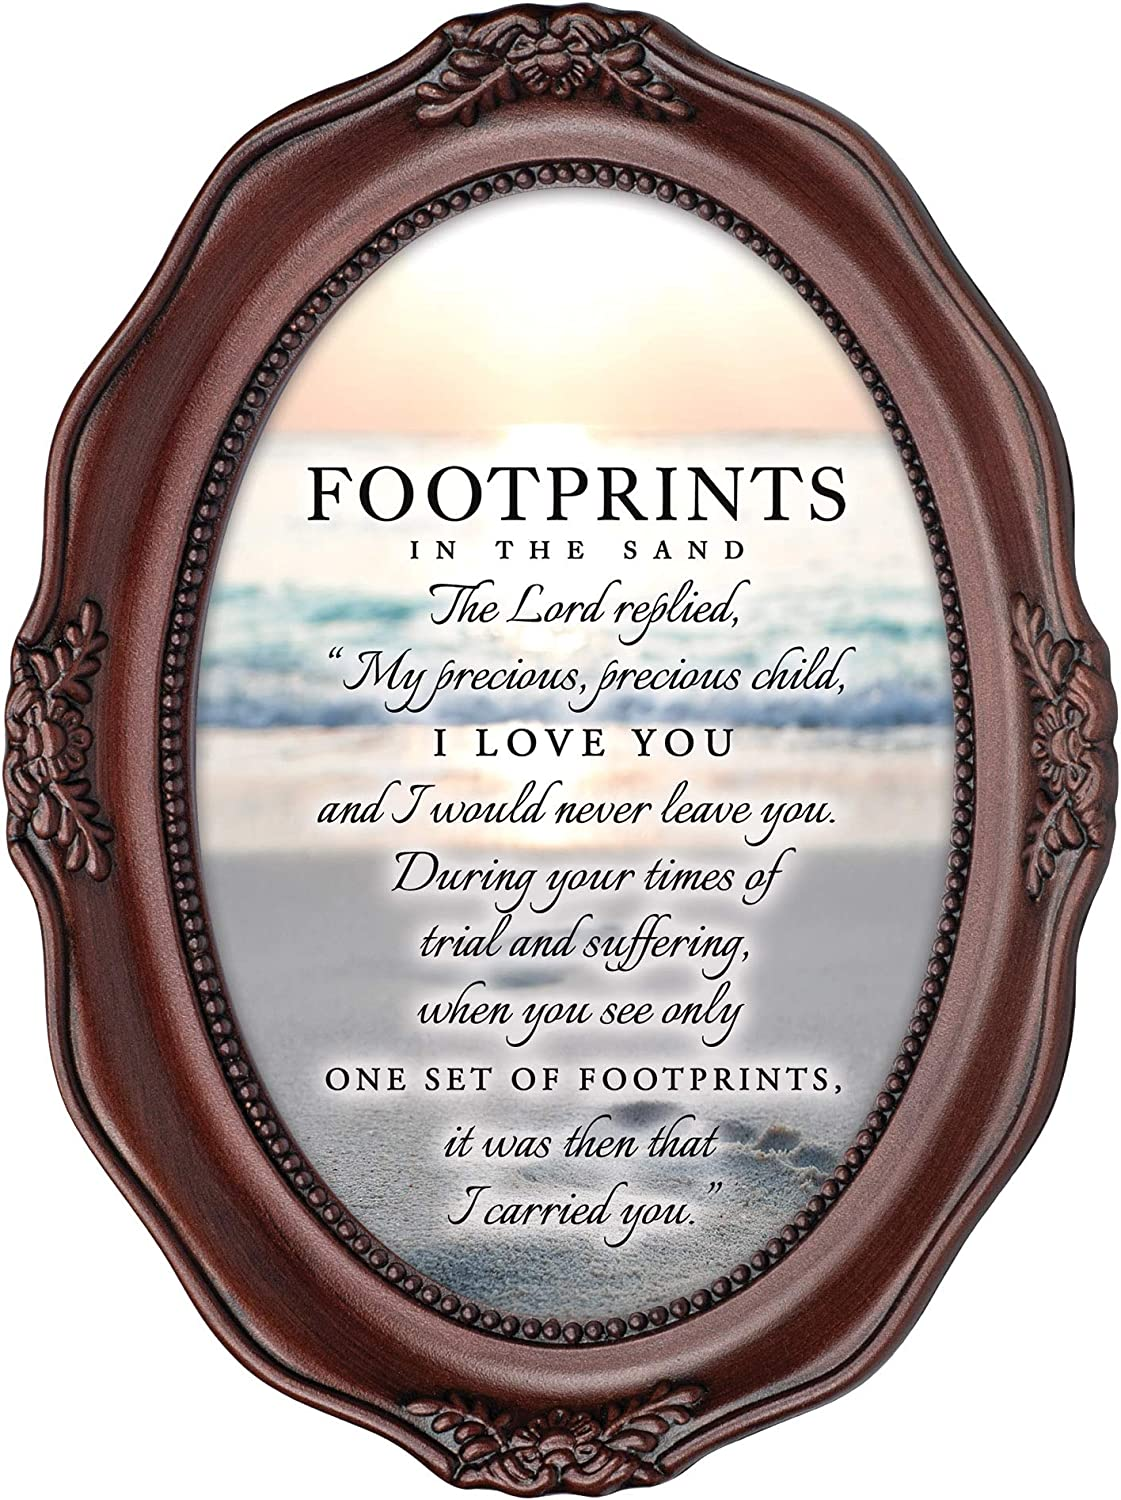 Cottage Garden Footprints in The Sand Mahogany Finish Wavy 5 x 7 Oval Table and Wall Photo Frame